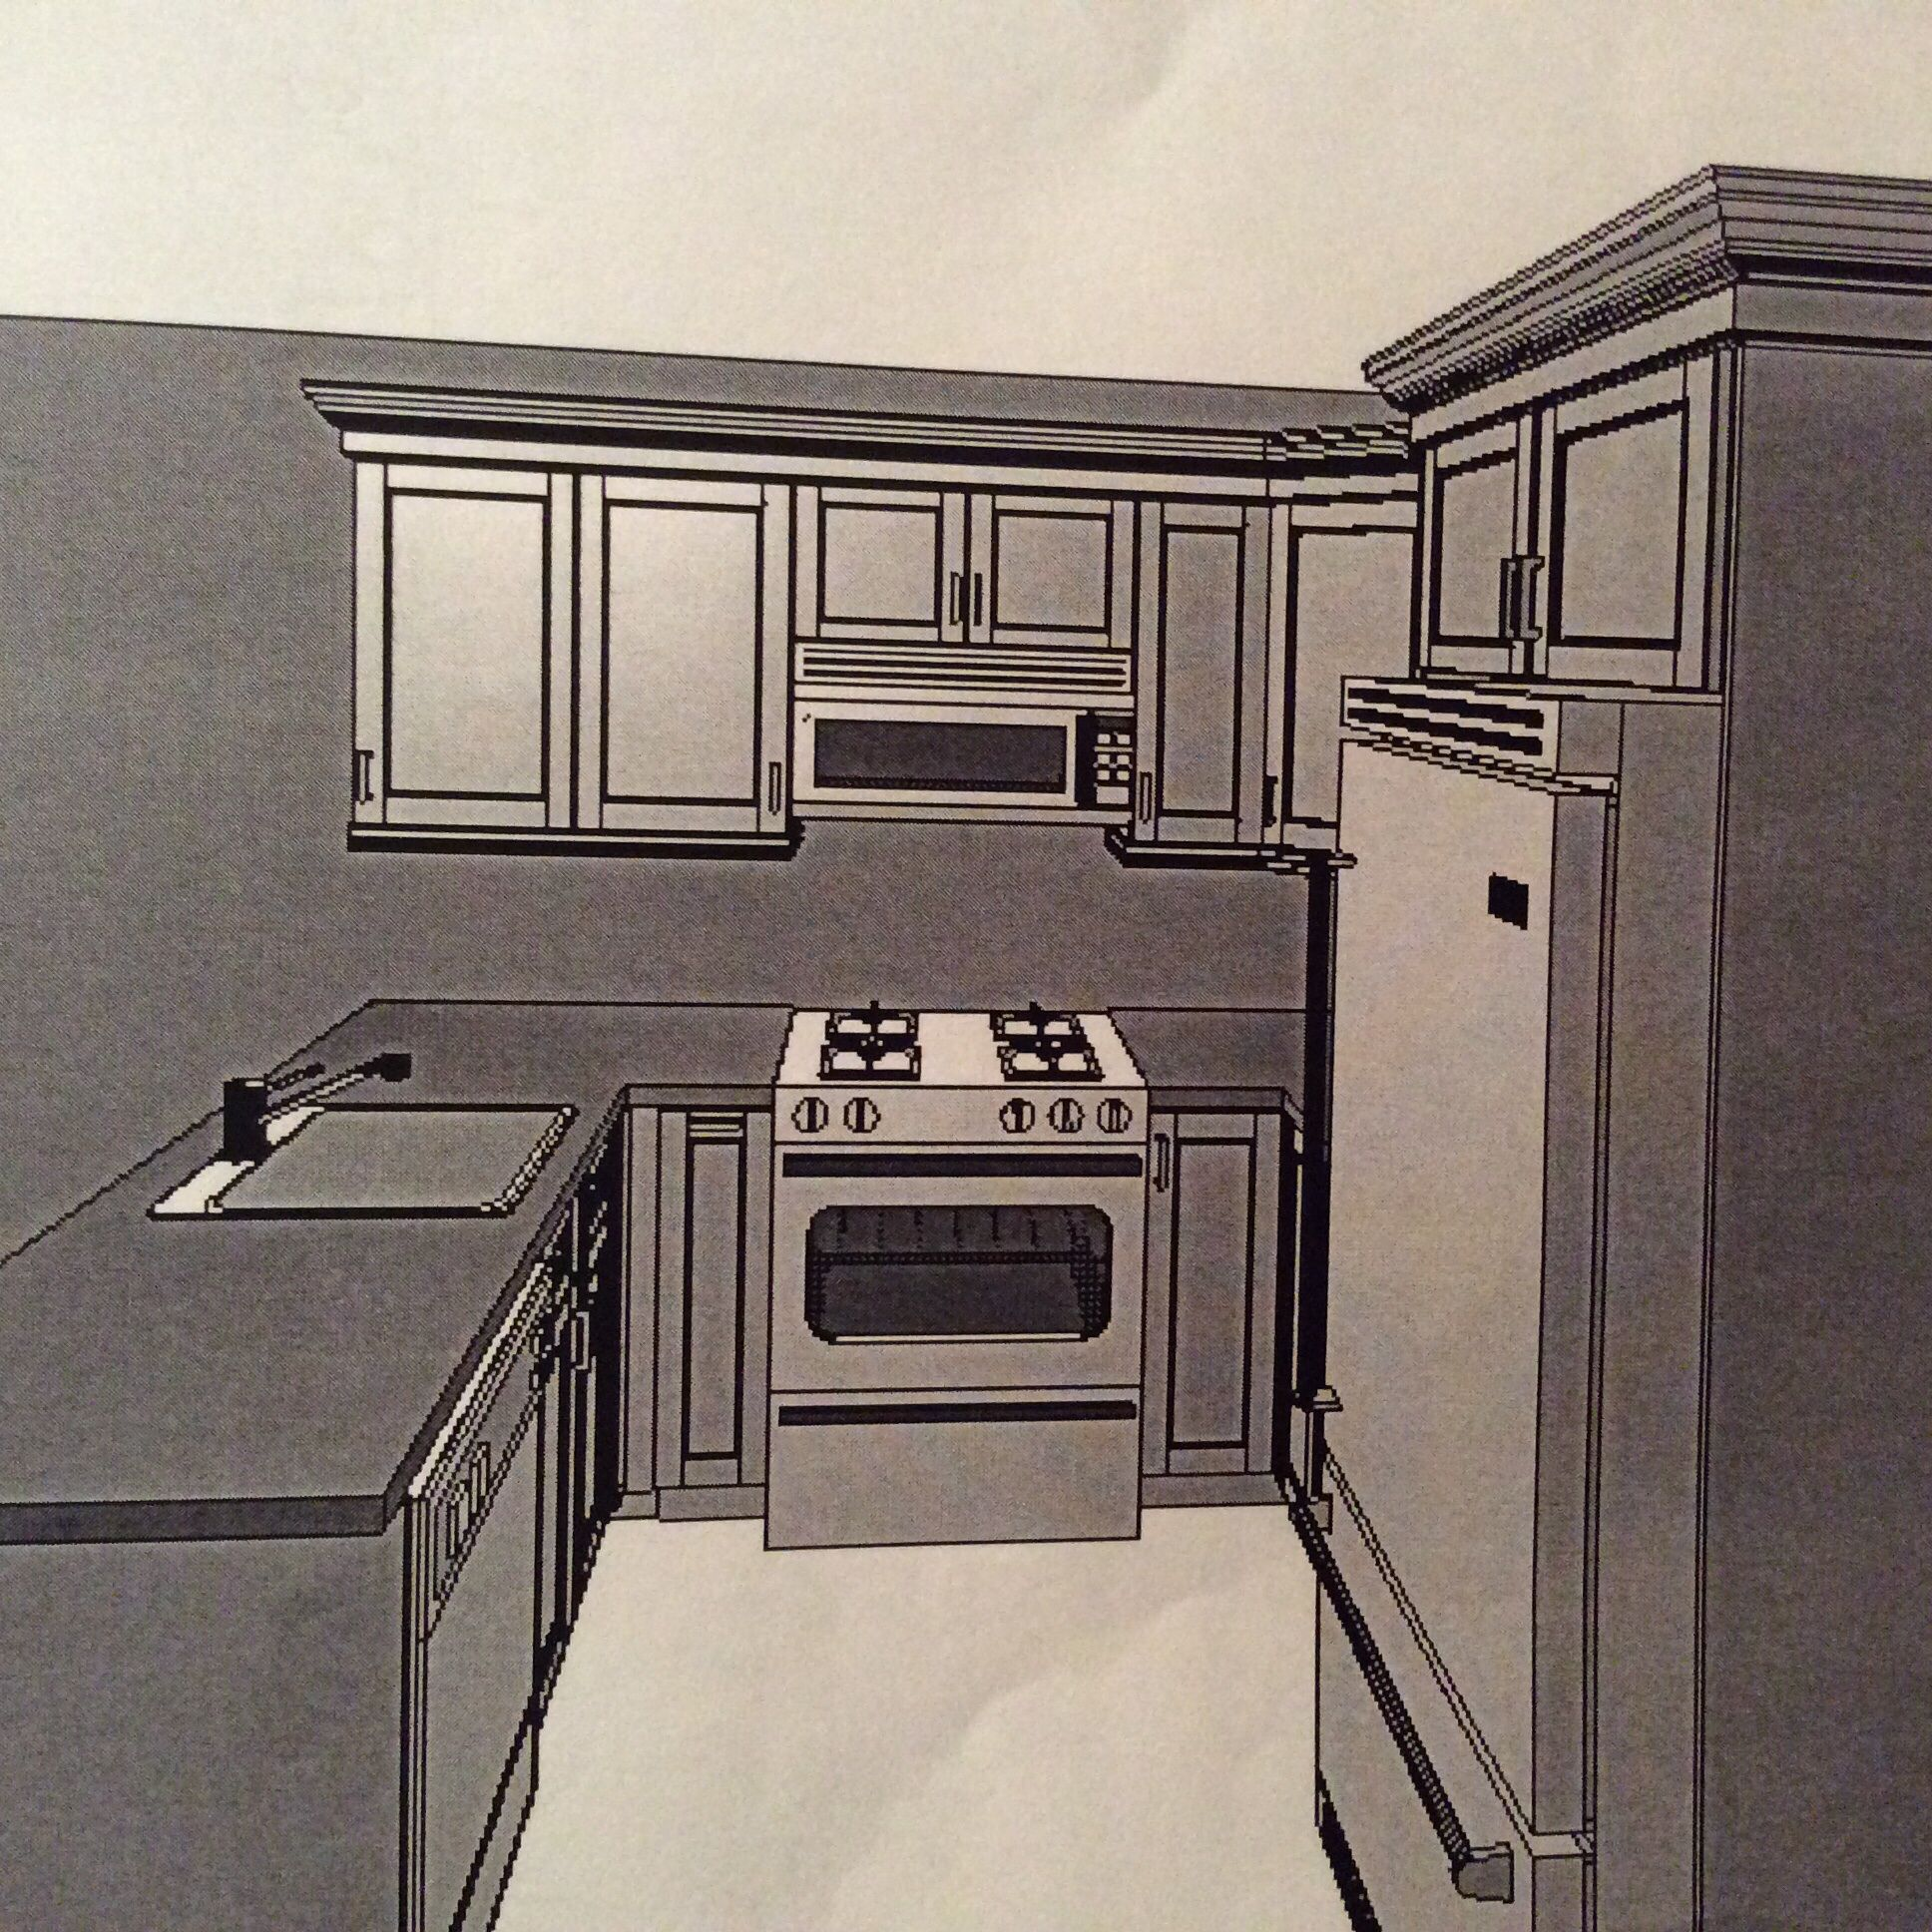 Rona Design Using Orchard Park Cabinetry For Kitchen Dw To Be Fully Integrated Rona Design Kitchen Design